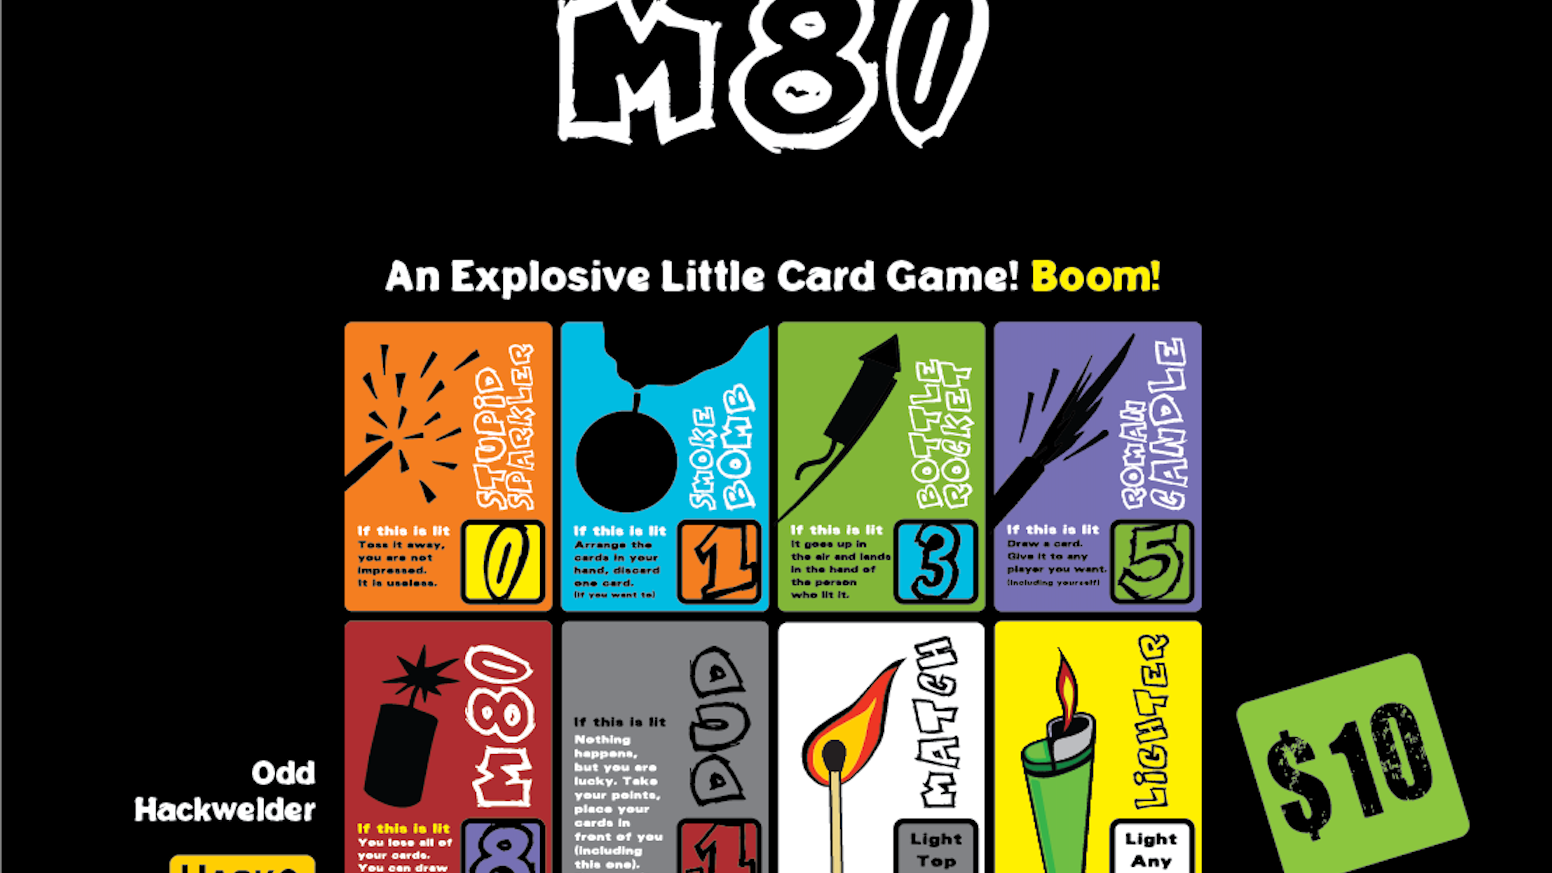 It's time to play with fireworks, but be careful - an M80 might explode in your hand!